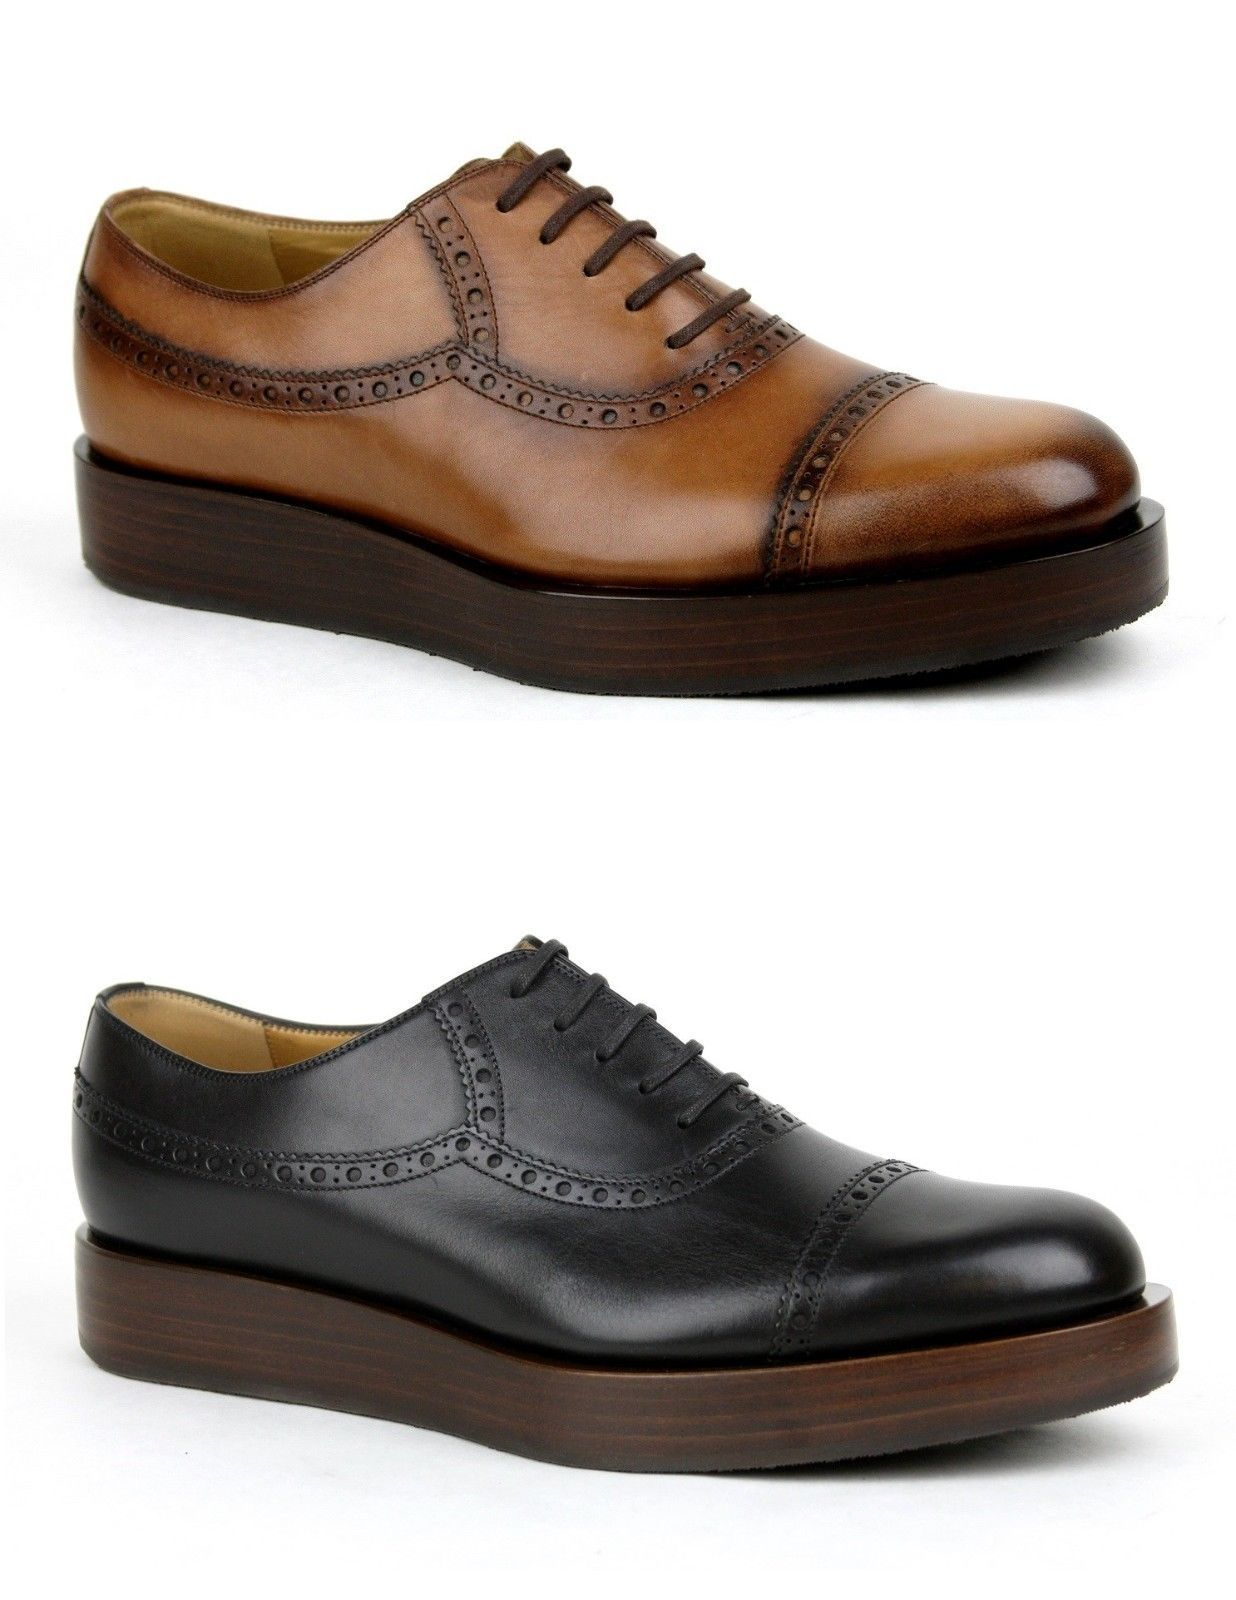 266e32f4fbb3 Details about  840 New Gucci Mens Leather Platform Lace-up Oxford ...